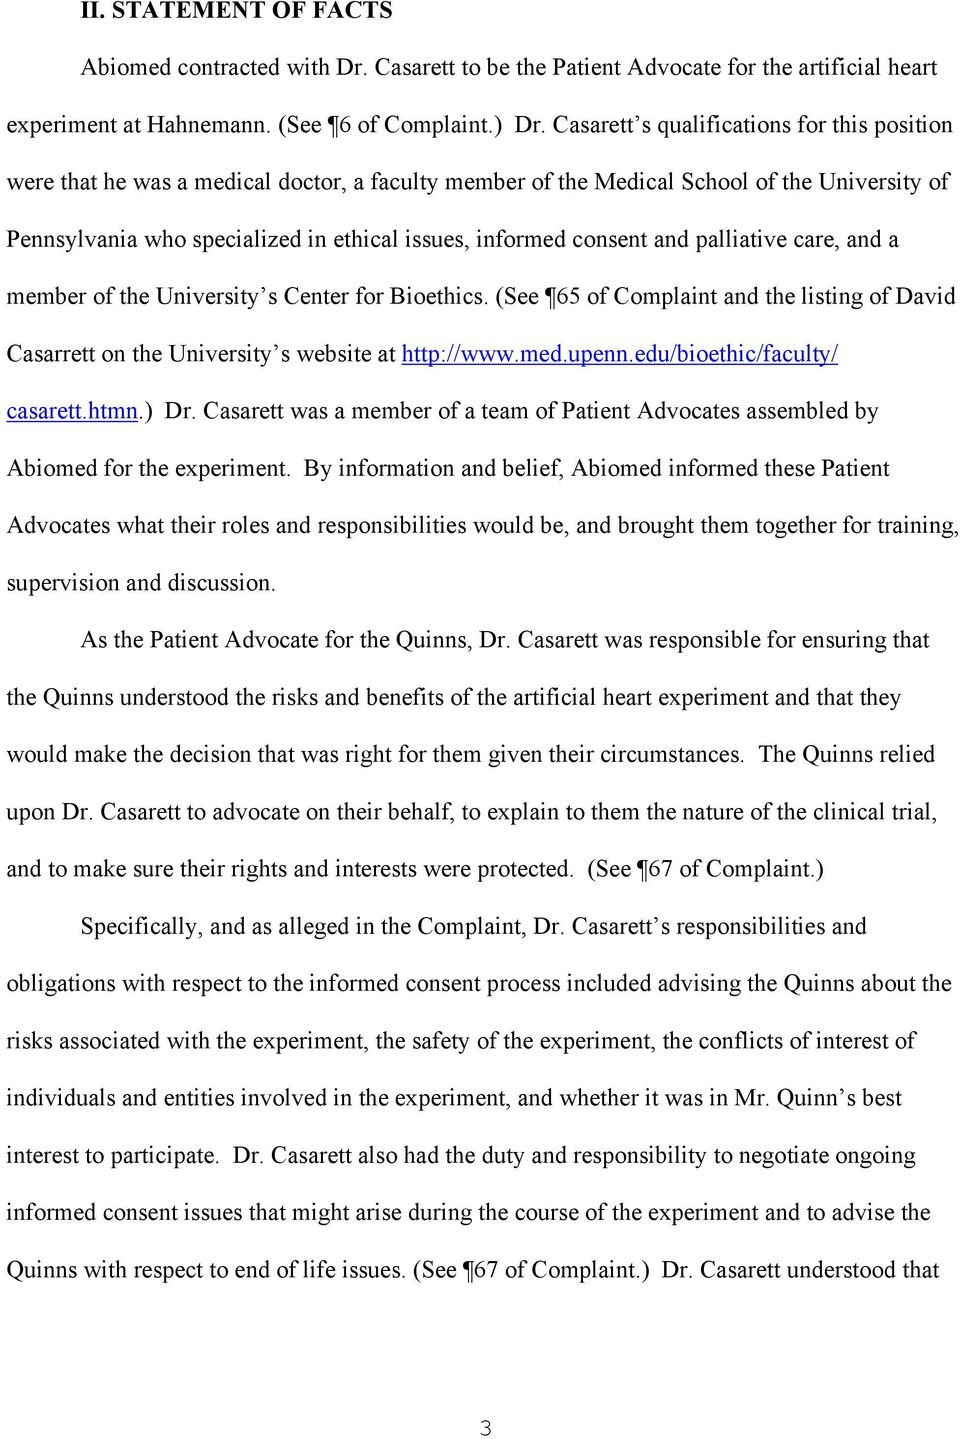 consent and palliative care, and a member of the University s Center for Bioethics. (See 65 of Complaint and the listing of David Casarrett on the University s website at http://www.med.upenn.